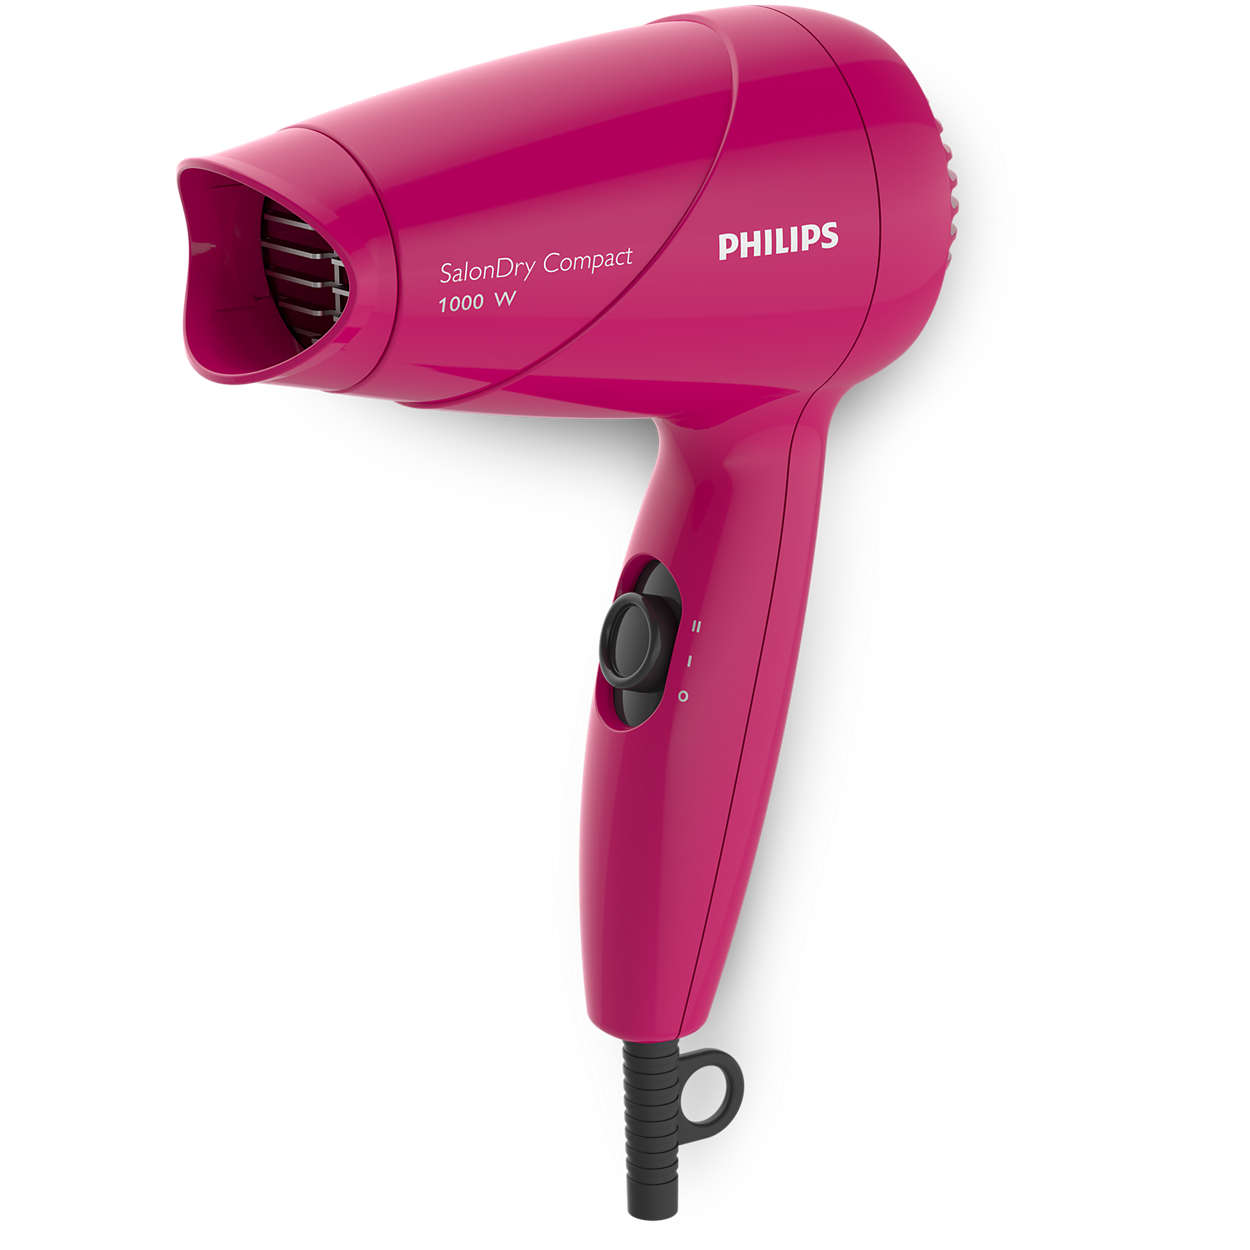 salondry dryer hp8141 00 philips